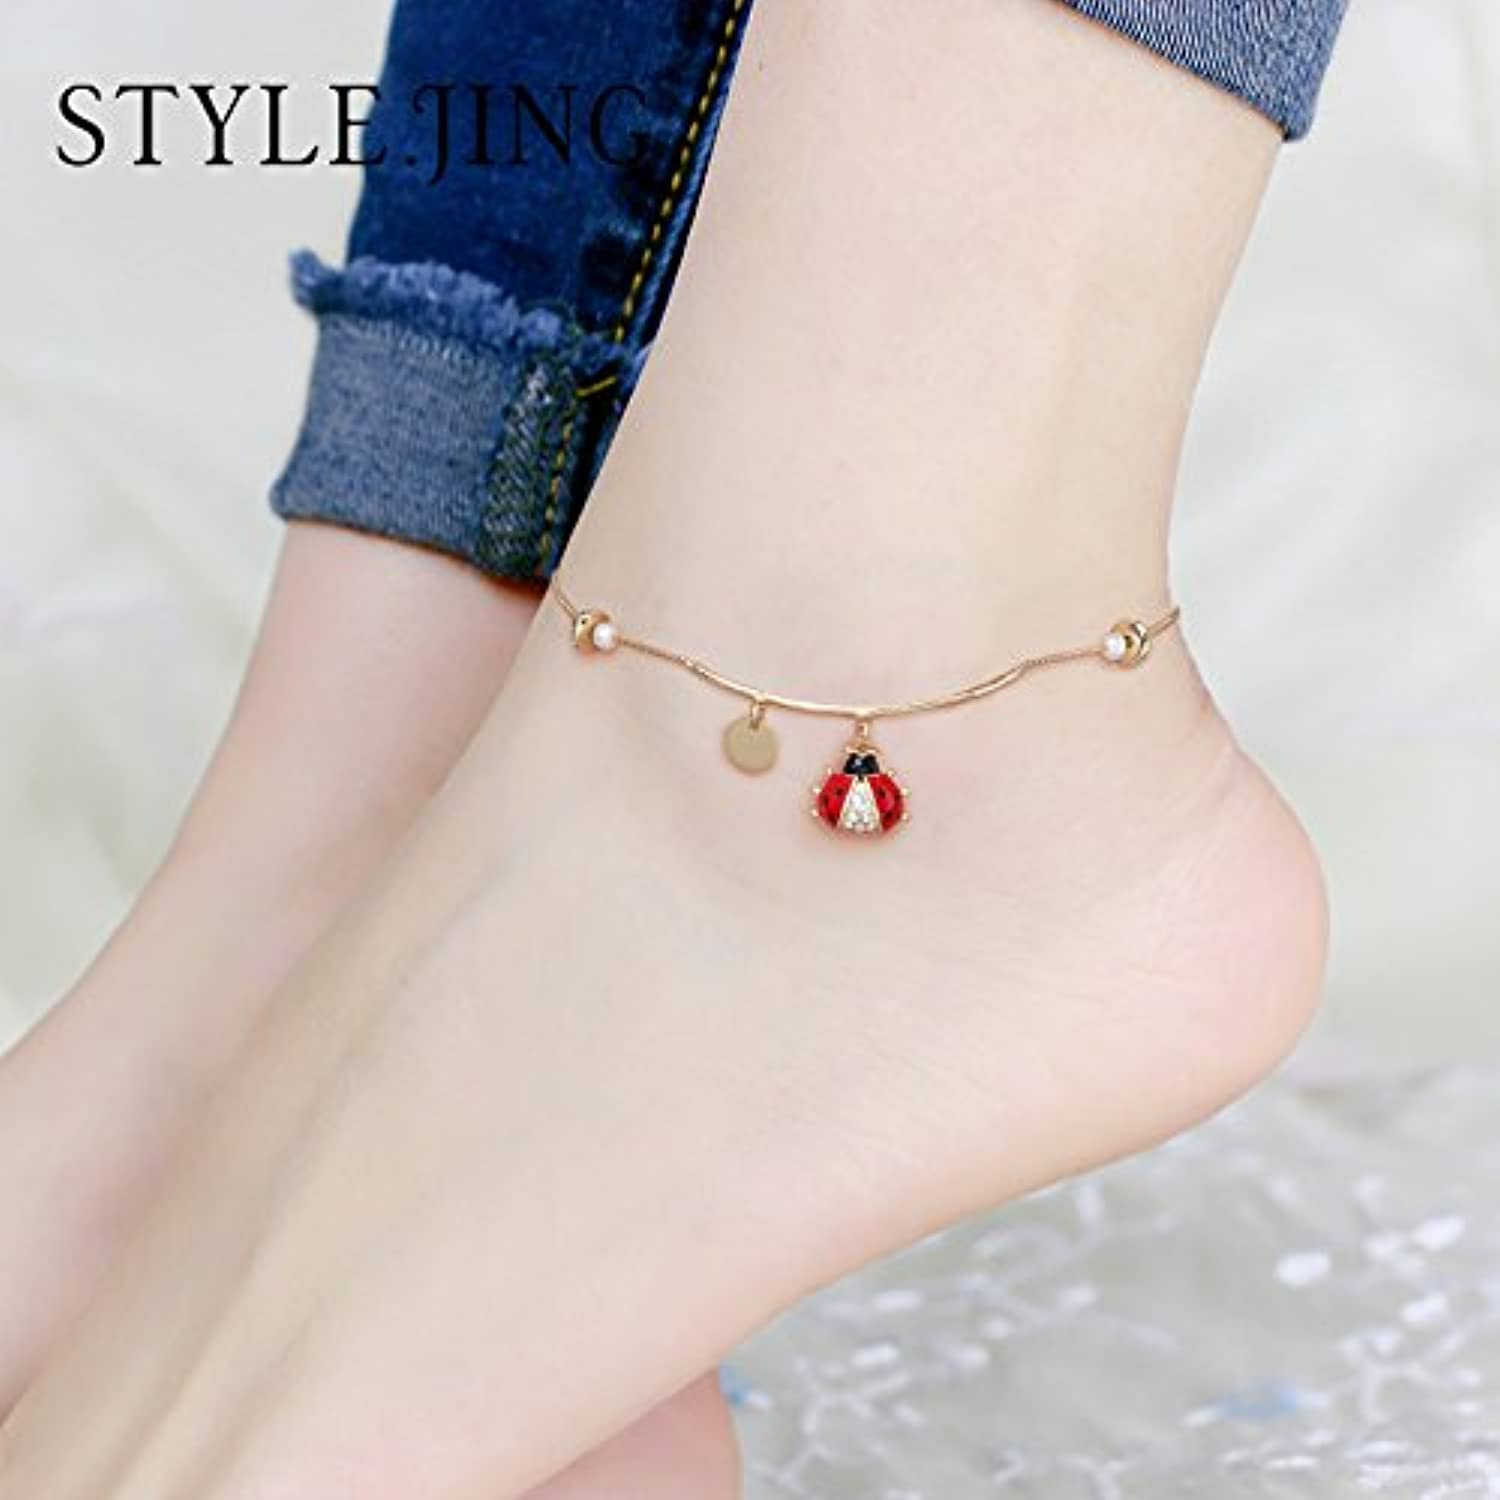 Static Style Foot Chain Anklet Women Girls Models Simple Personality Ladybug Crossing Student Wild Foot Ring Jewelry Gift